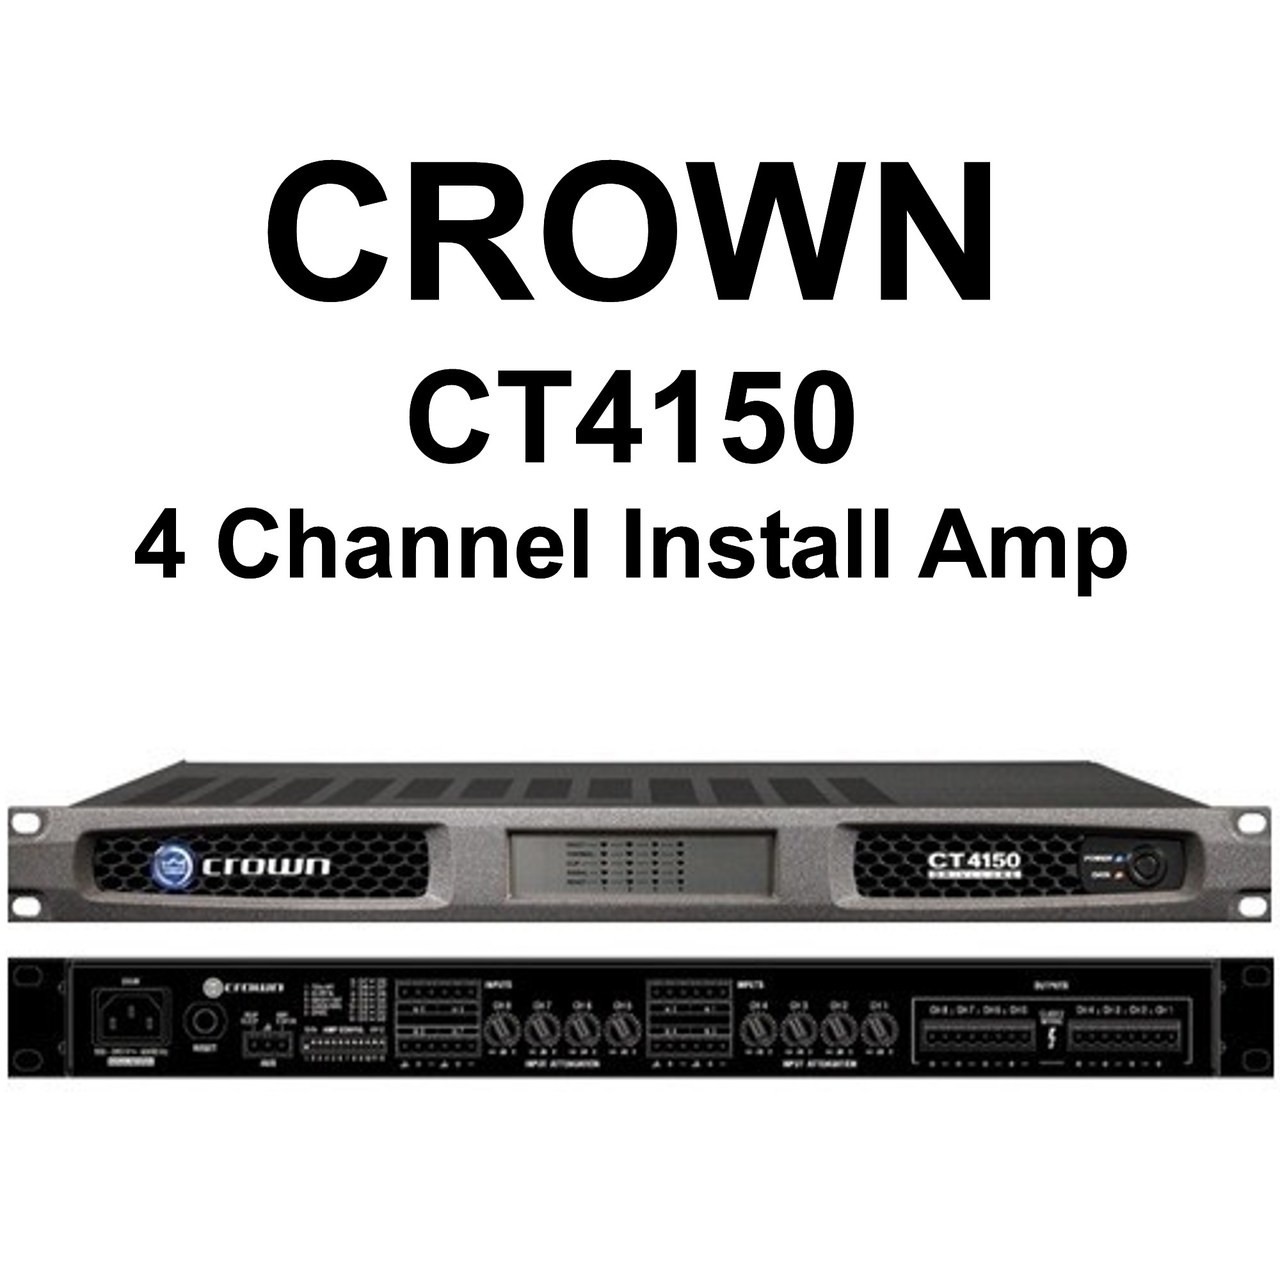 CROWN CT4150 DRIVECORE 4 Channel Install Rackmount